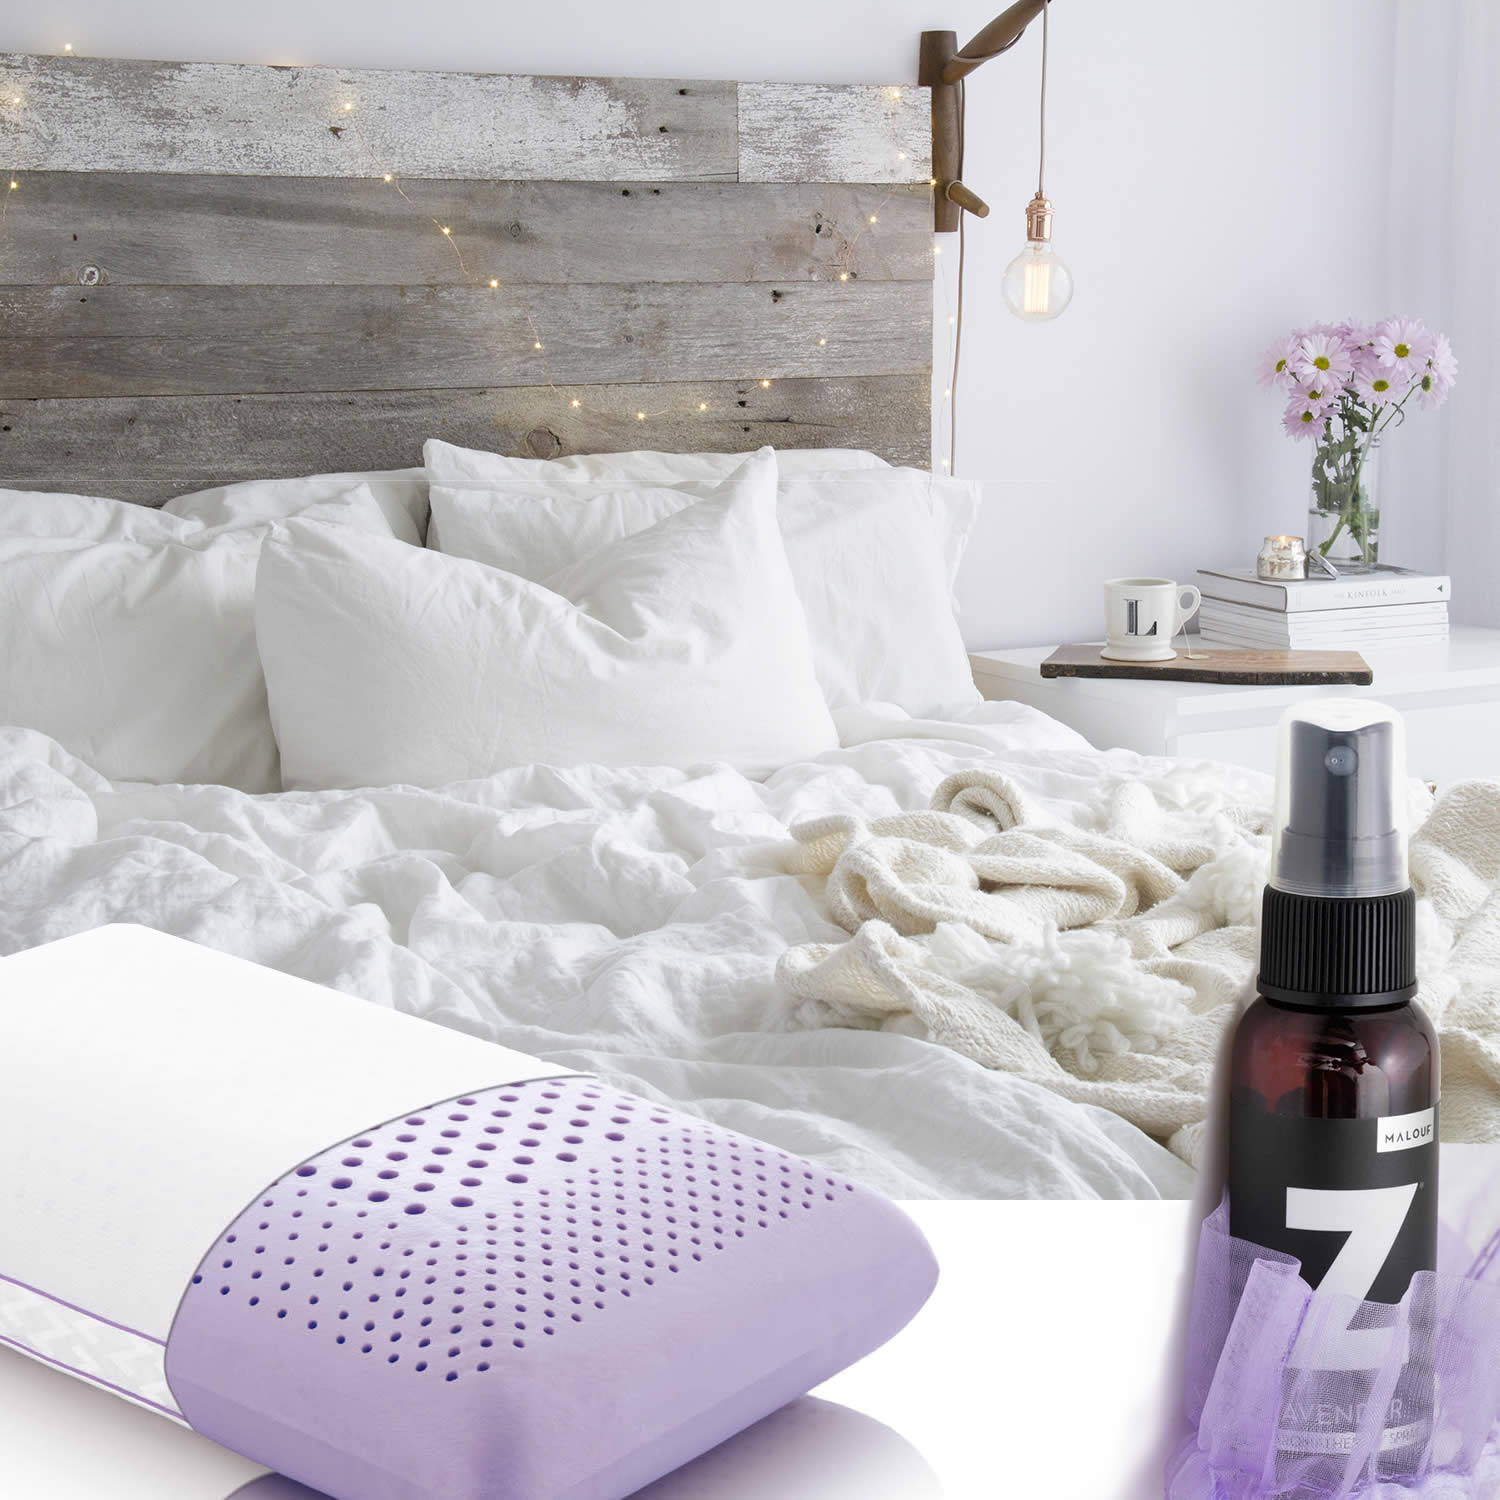 promote sleep relaxation & PERSONALIZE your pillow scent with lavender, PEPPERMINT or chamomile to enhance your sleep environment